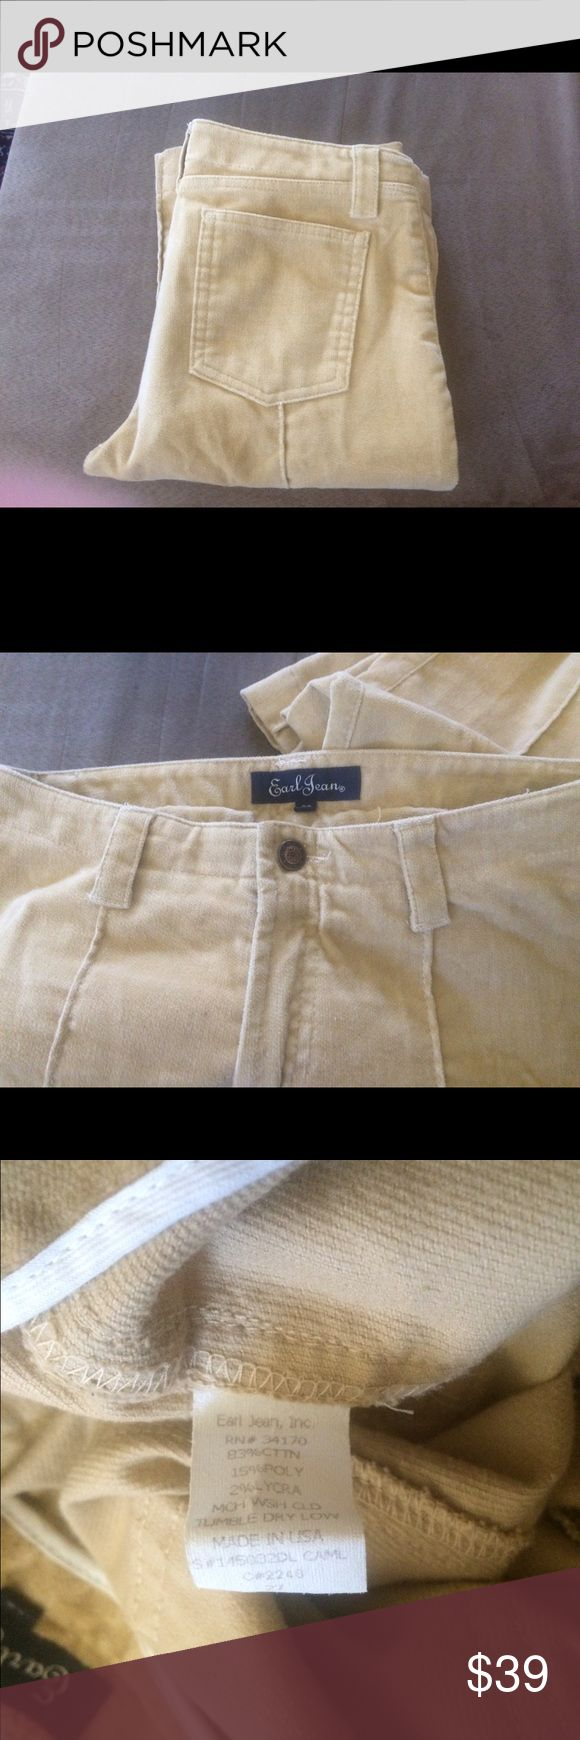 """Earl Jeans soft crushed cord pant size 27 Earl Jeans soft crush cord pant size 27 inseam 32"""" and rise 9"""" (dirt on hems) Earl Jeans Pants Boot Cut & Flare"""